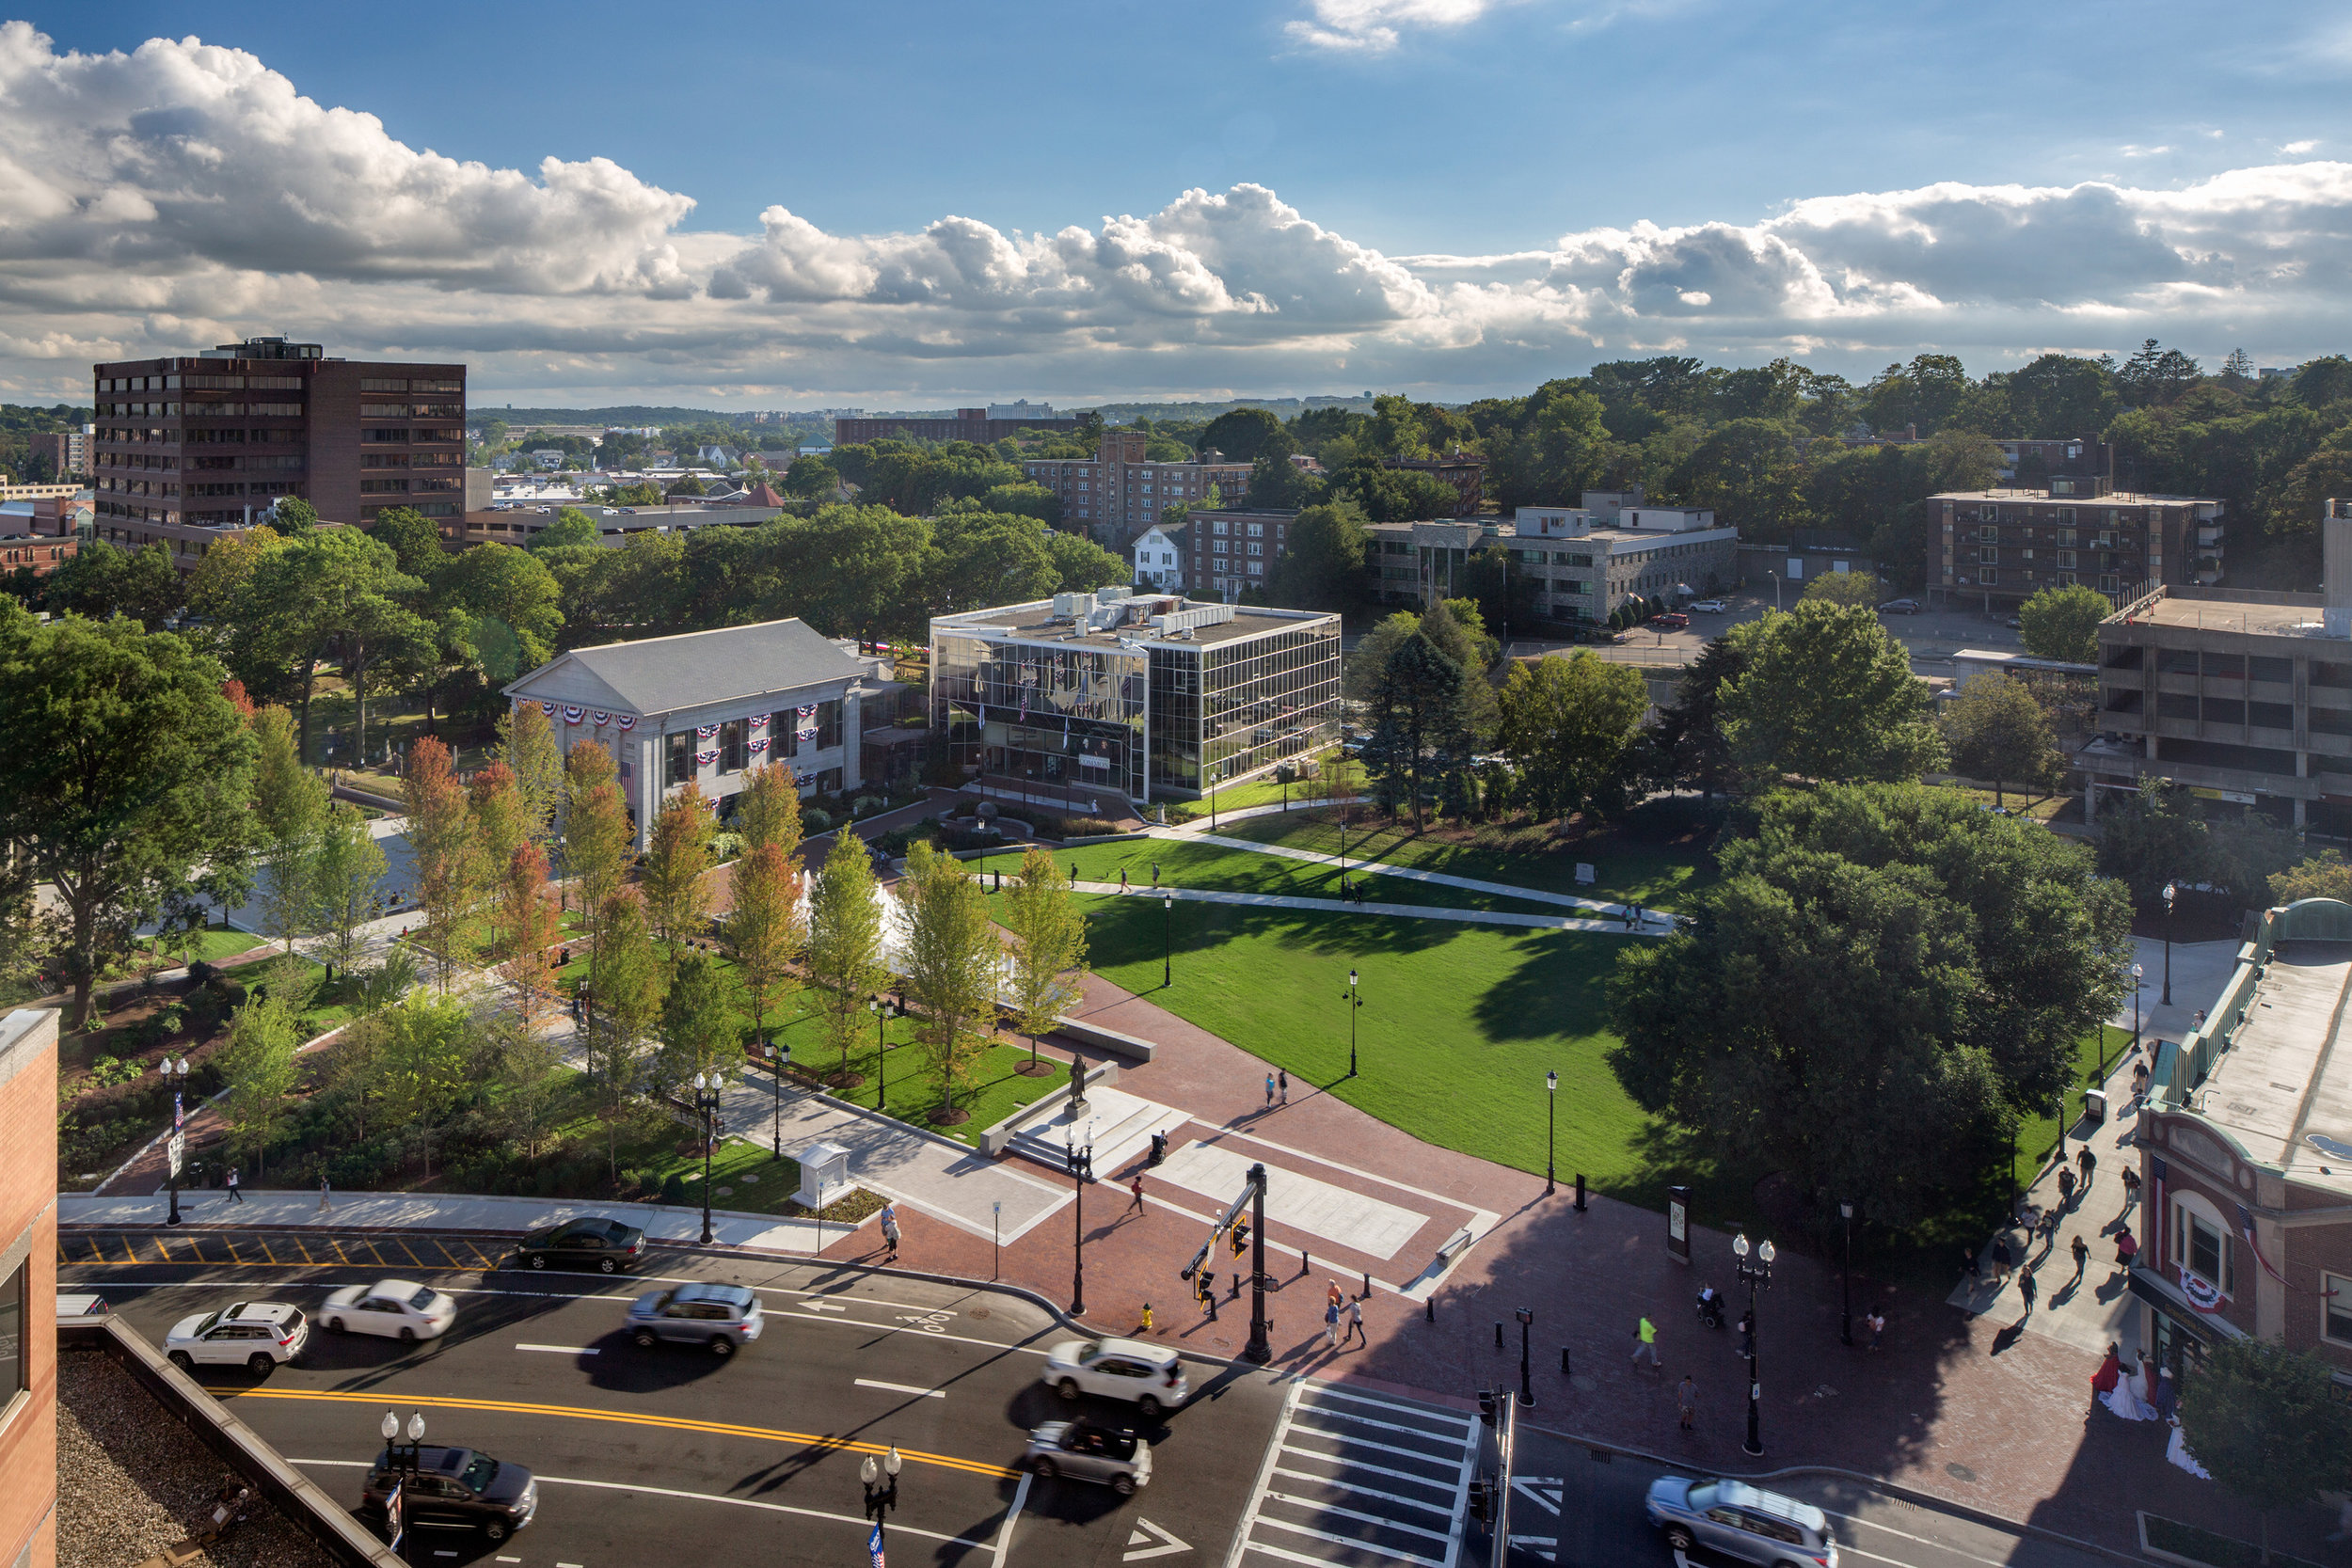 View of Hancock Adams Common from President's Place (photo by Ed Wonsek)